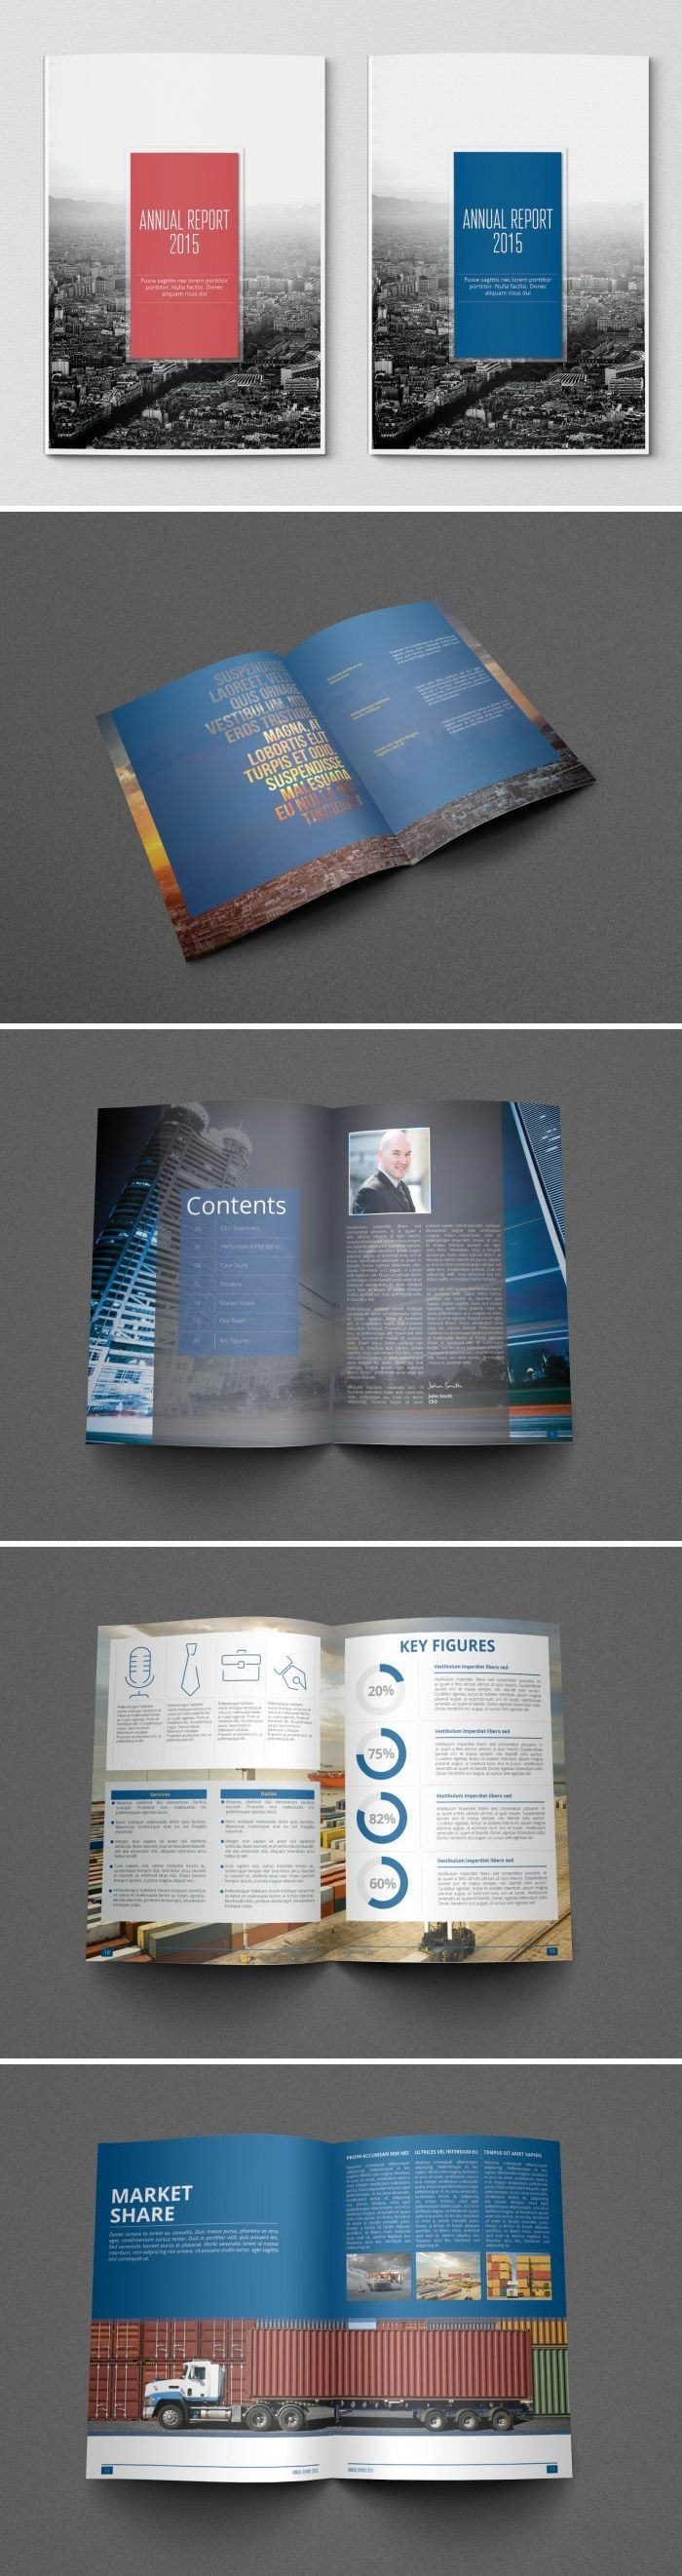 a showcase of annual report brochure designs to check out